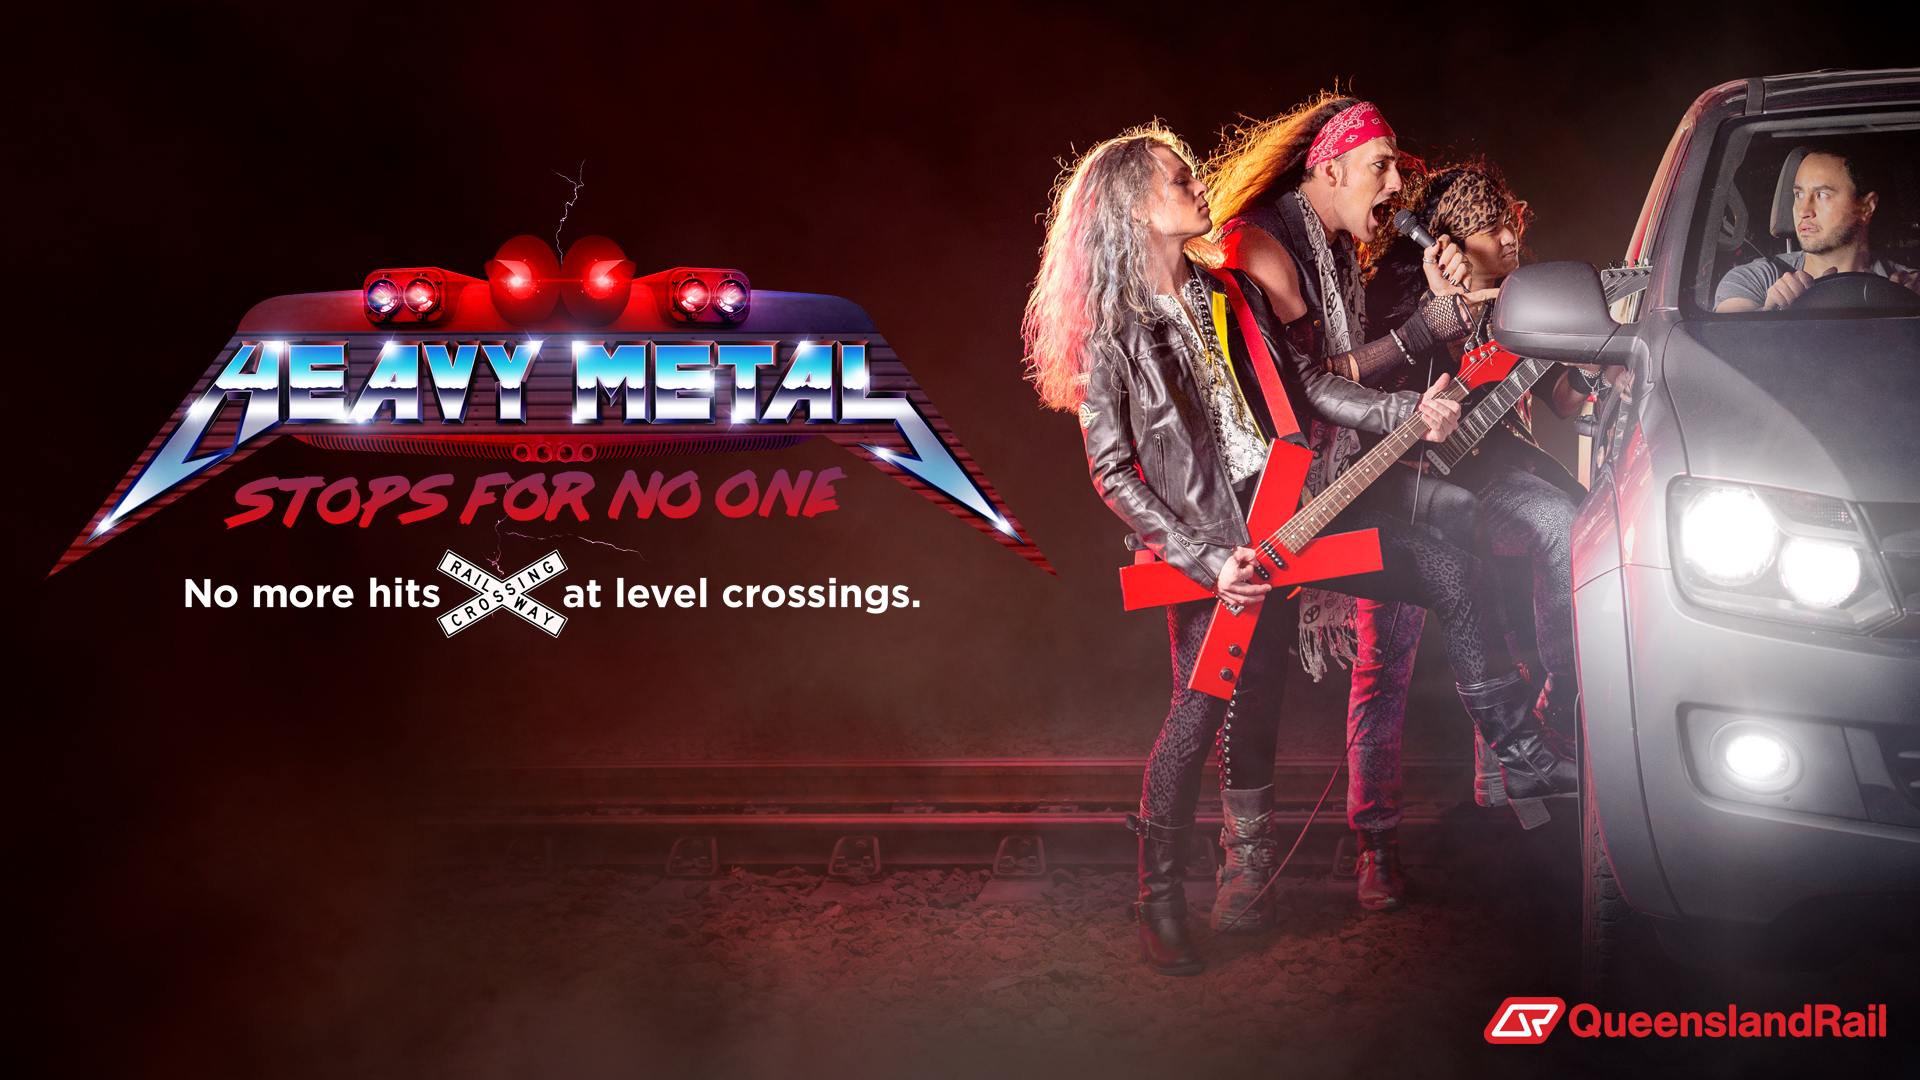 On Heavy Metal Heavy Metal Stops For No One